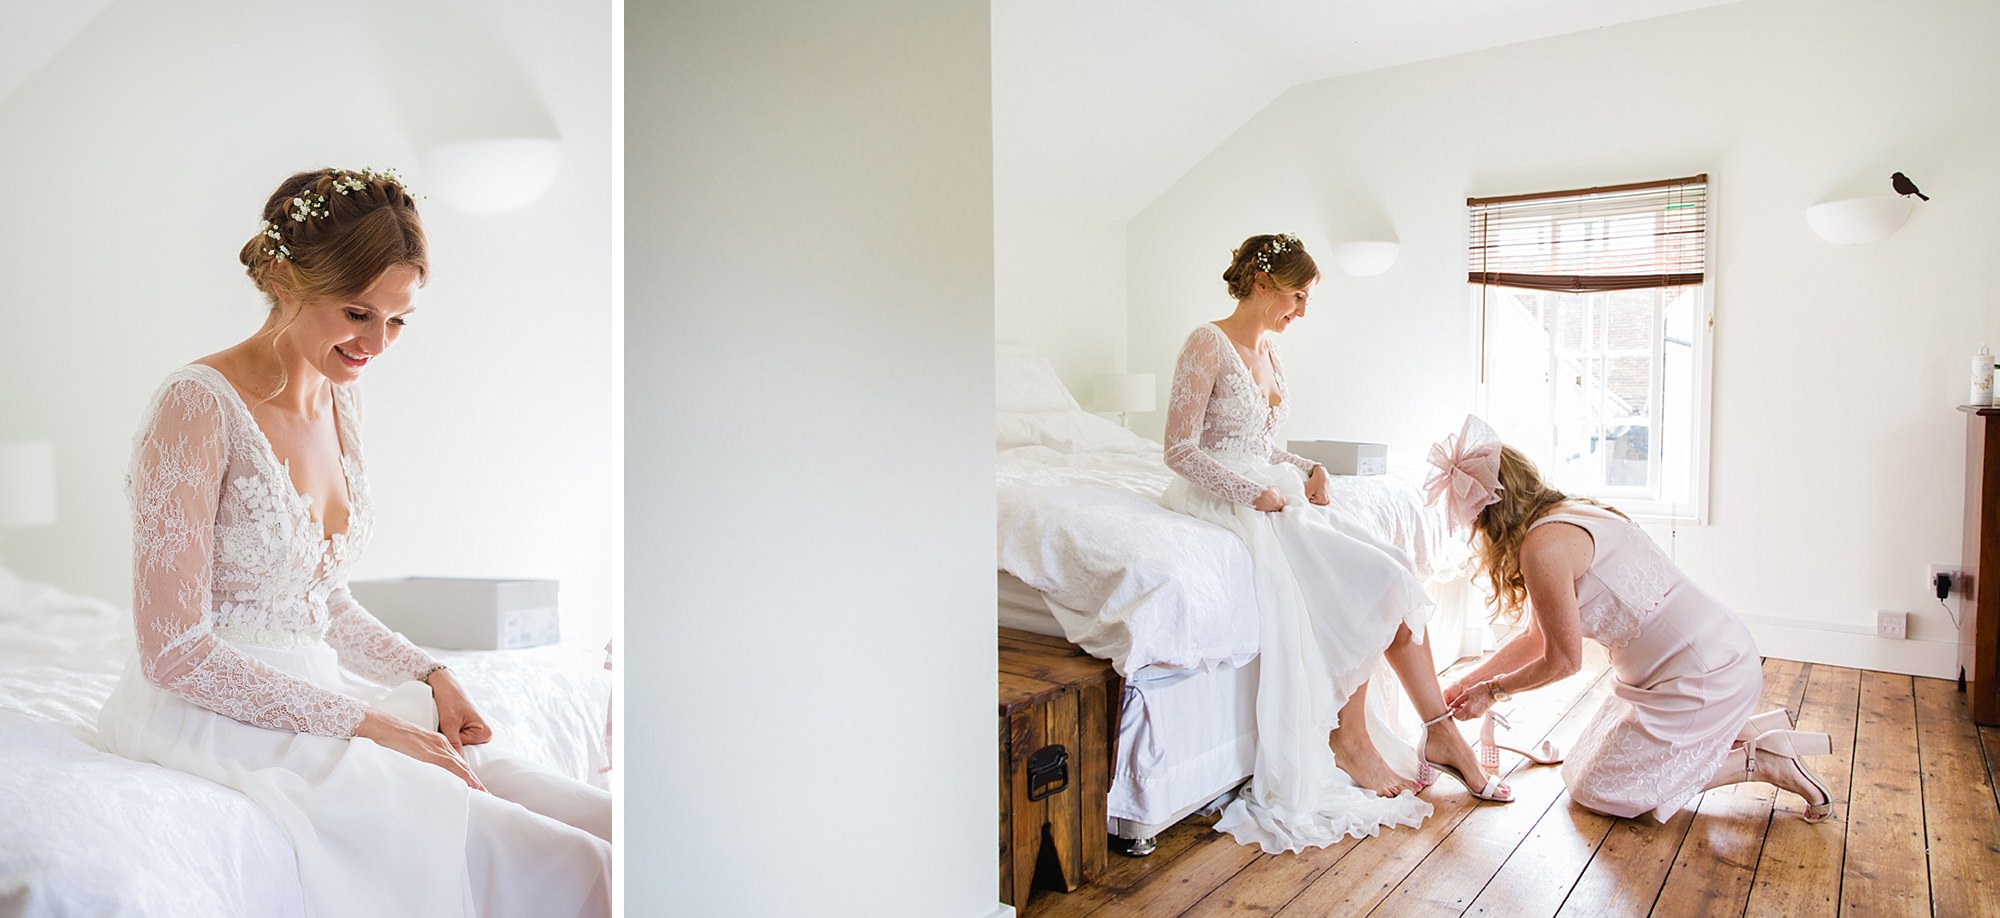 Marks Hall Estate wedding photography bride putting on shoes